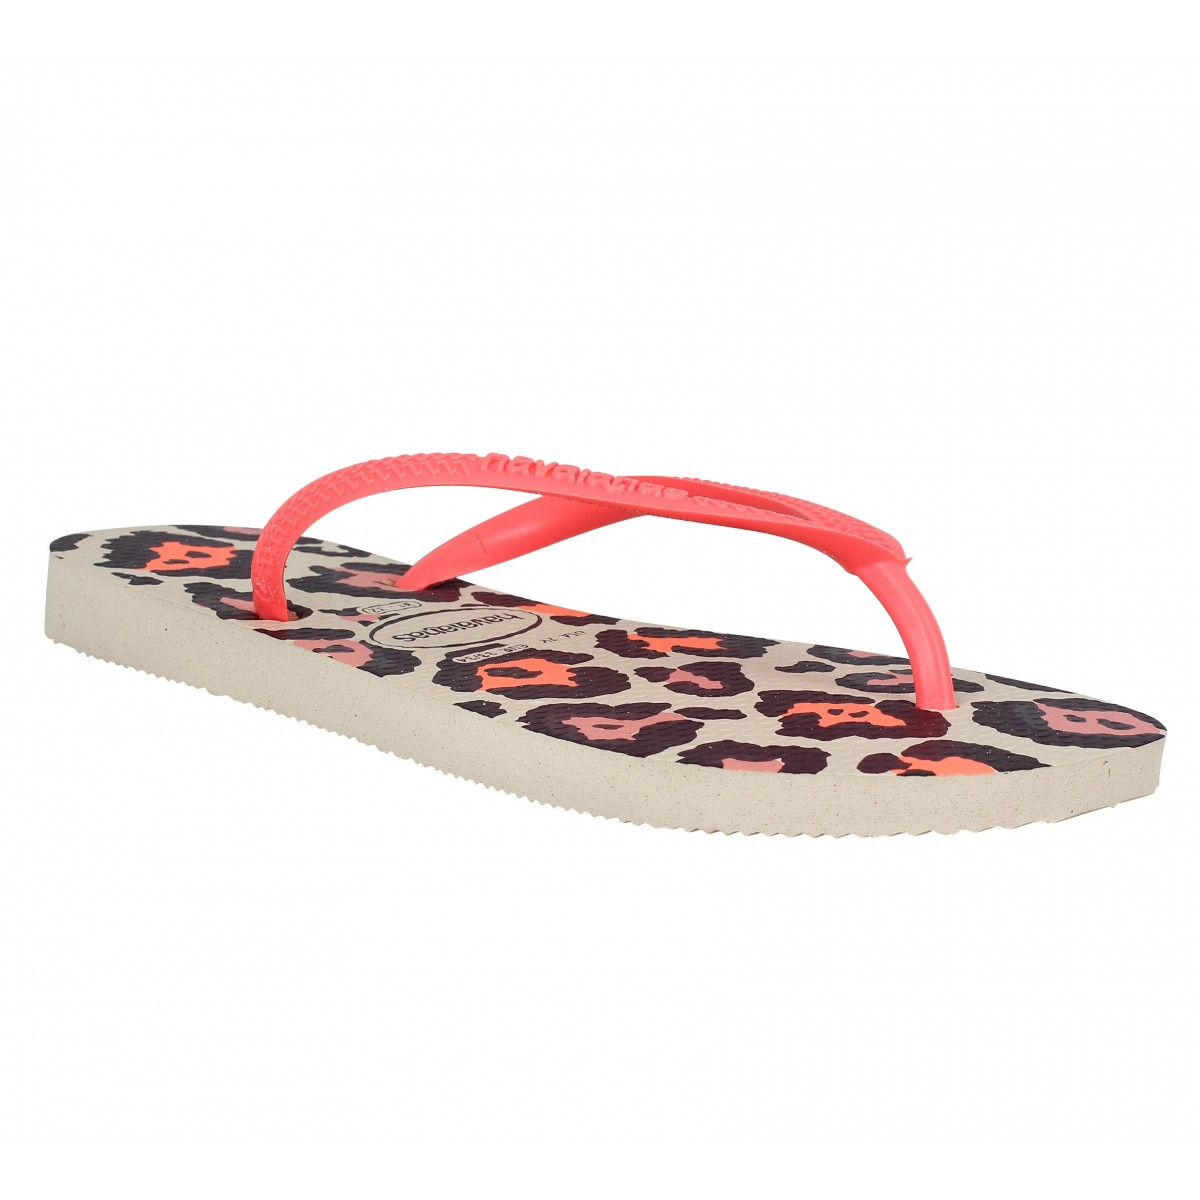 soldes havaianas slim animals caoutchouc enfant coral enfants fanny chaussures. Black Bedroom Furniture Sets. Home Design Ideas